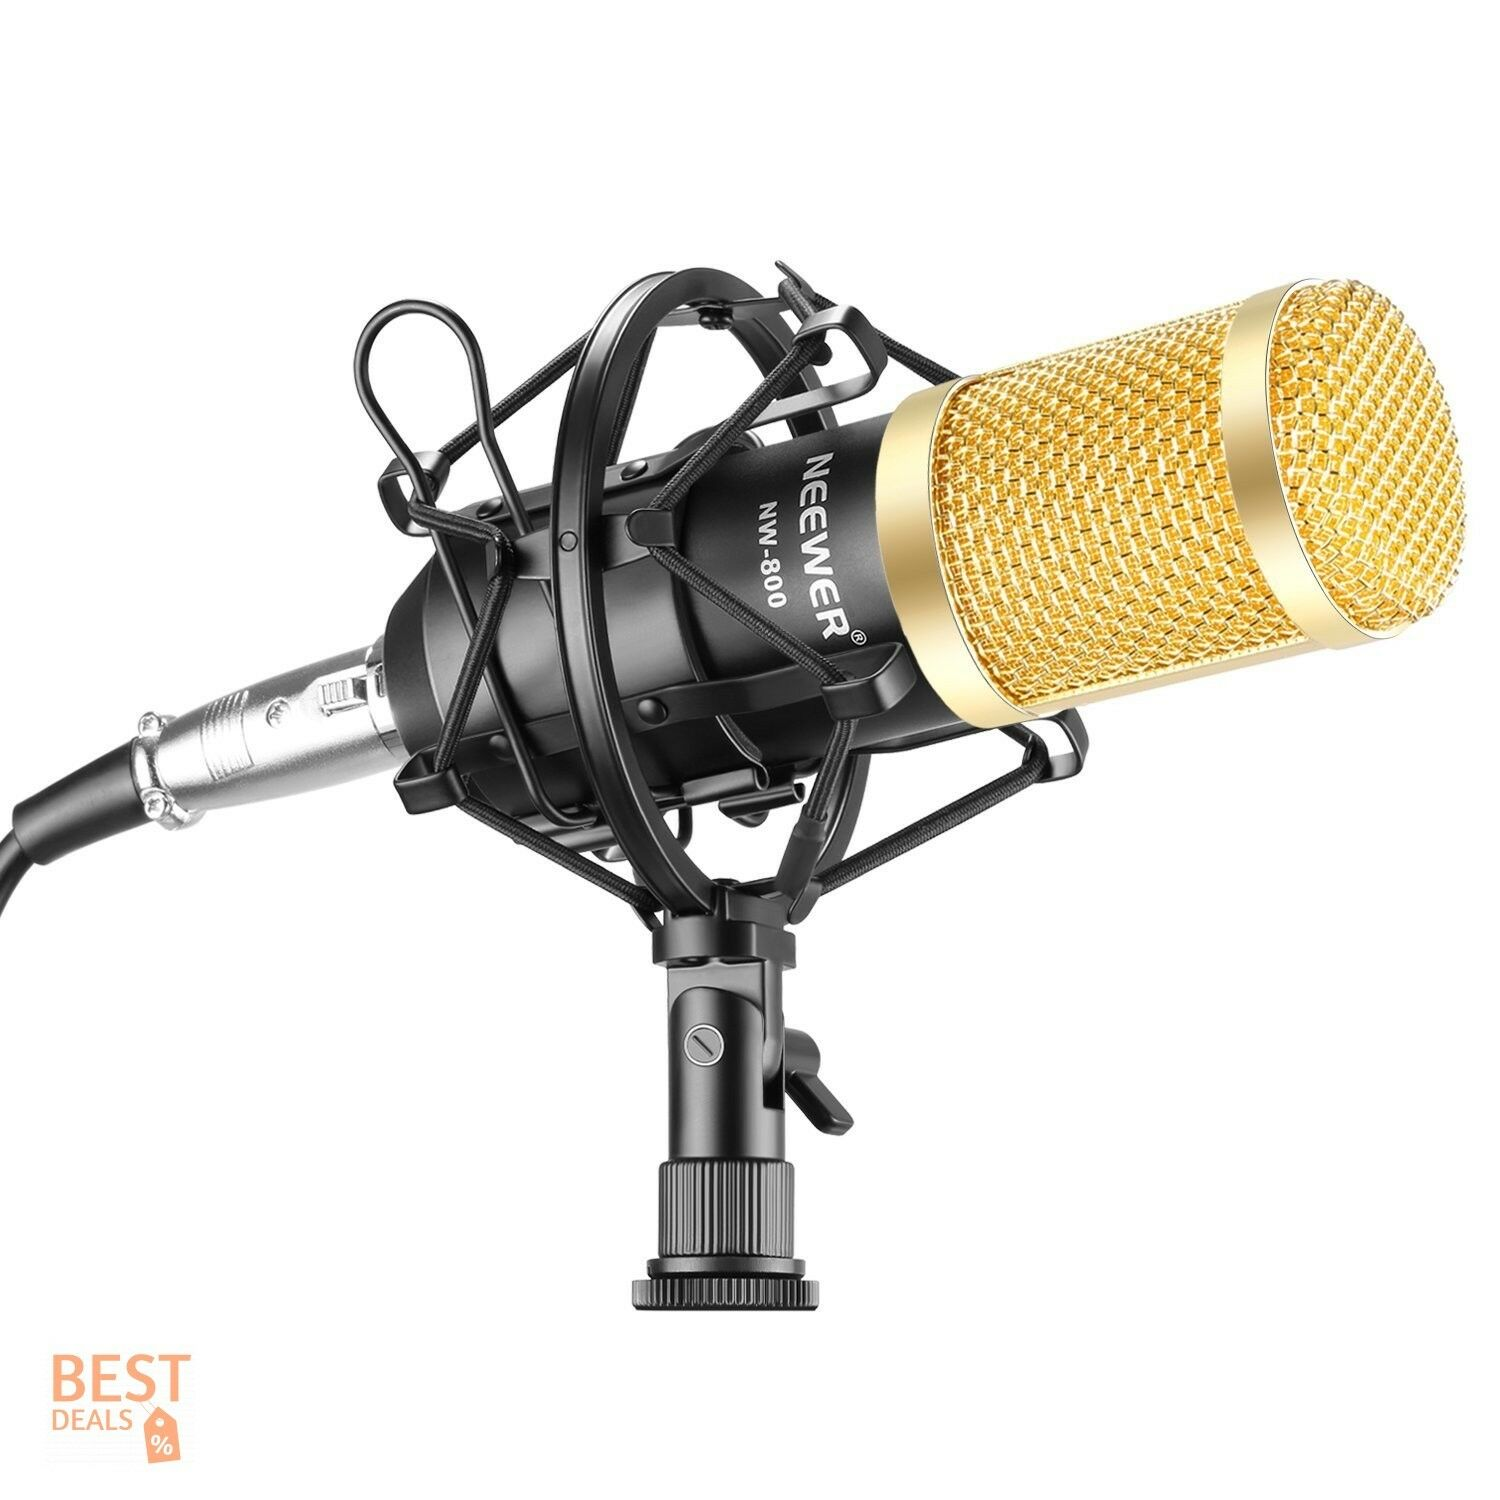 Live Streaming Device Podcast Professional Media Recording Microphone PC Mac NEW